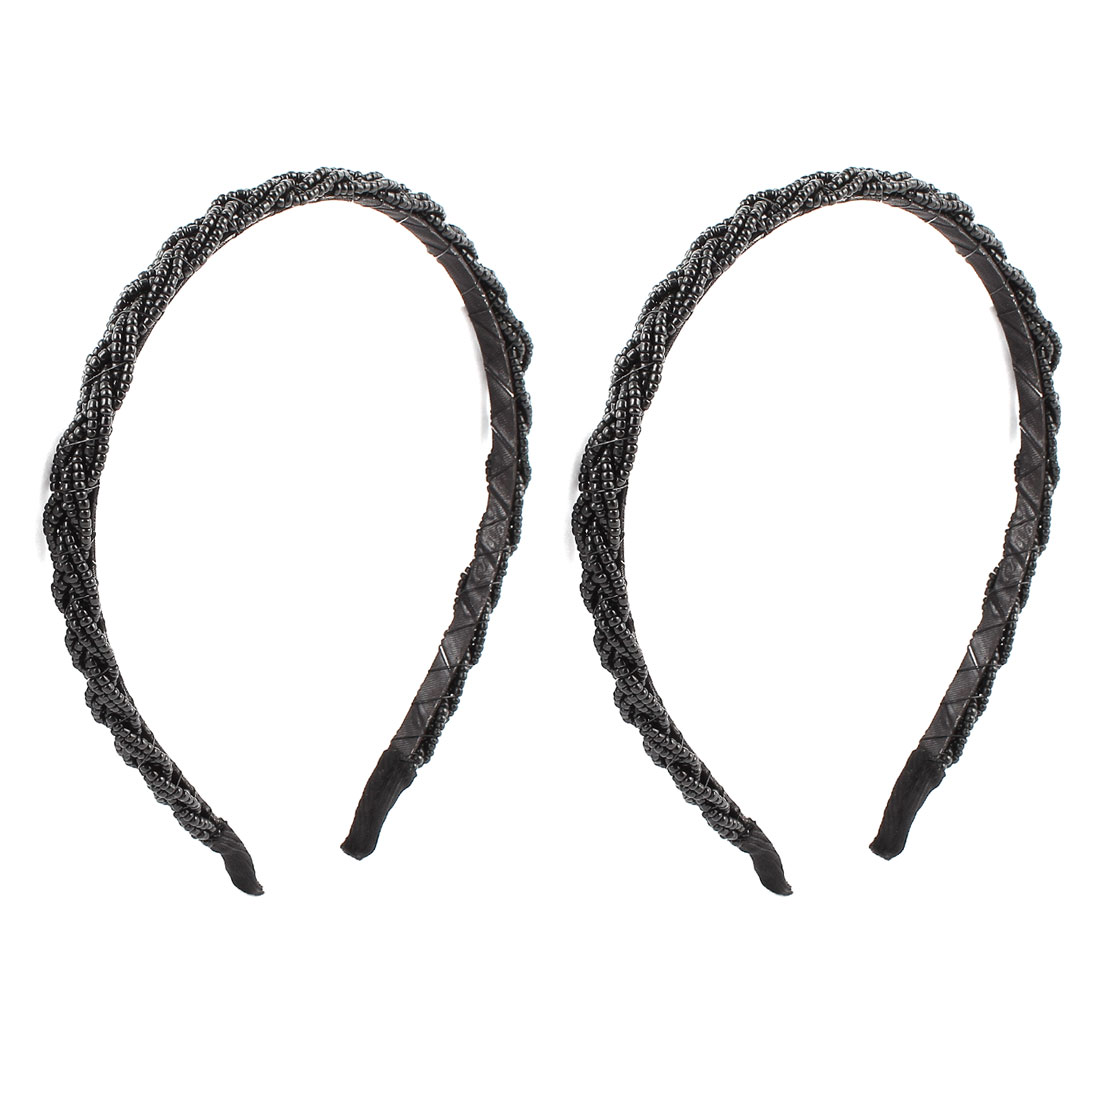 2 Pcs Black Plastic Beads Detail Metal Hair Band Headbands for Ladies